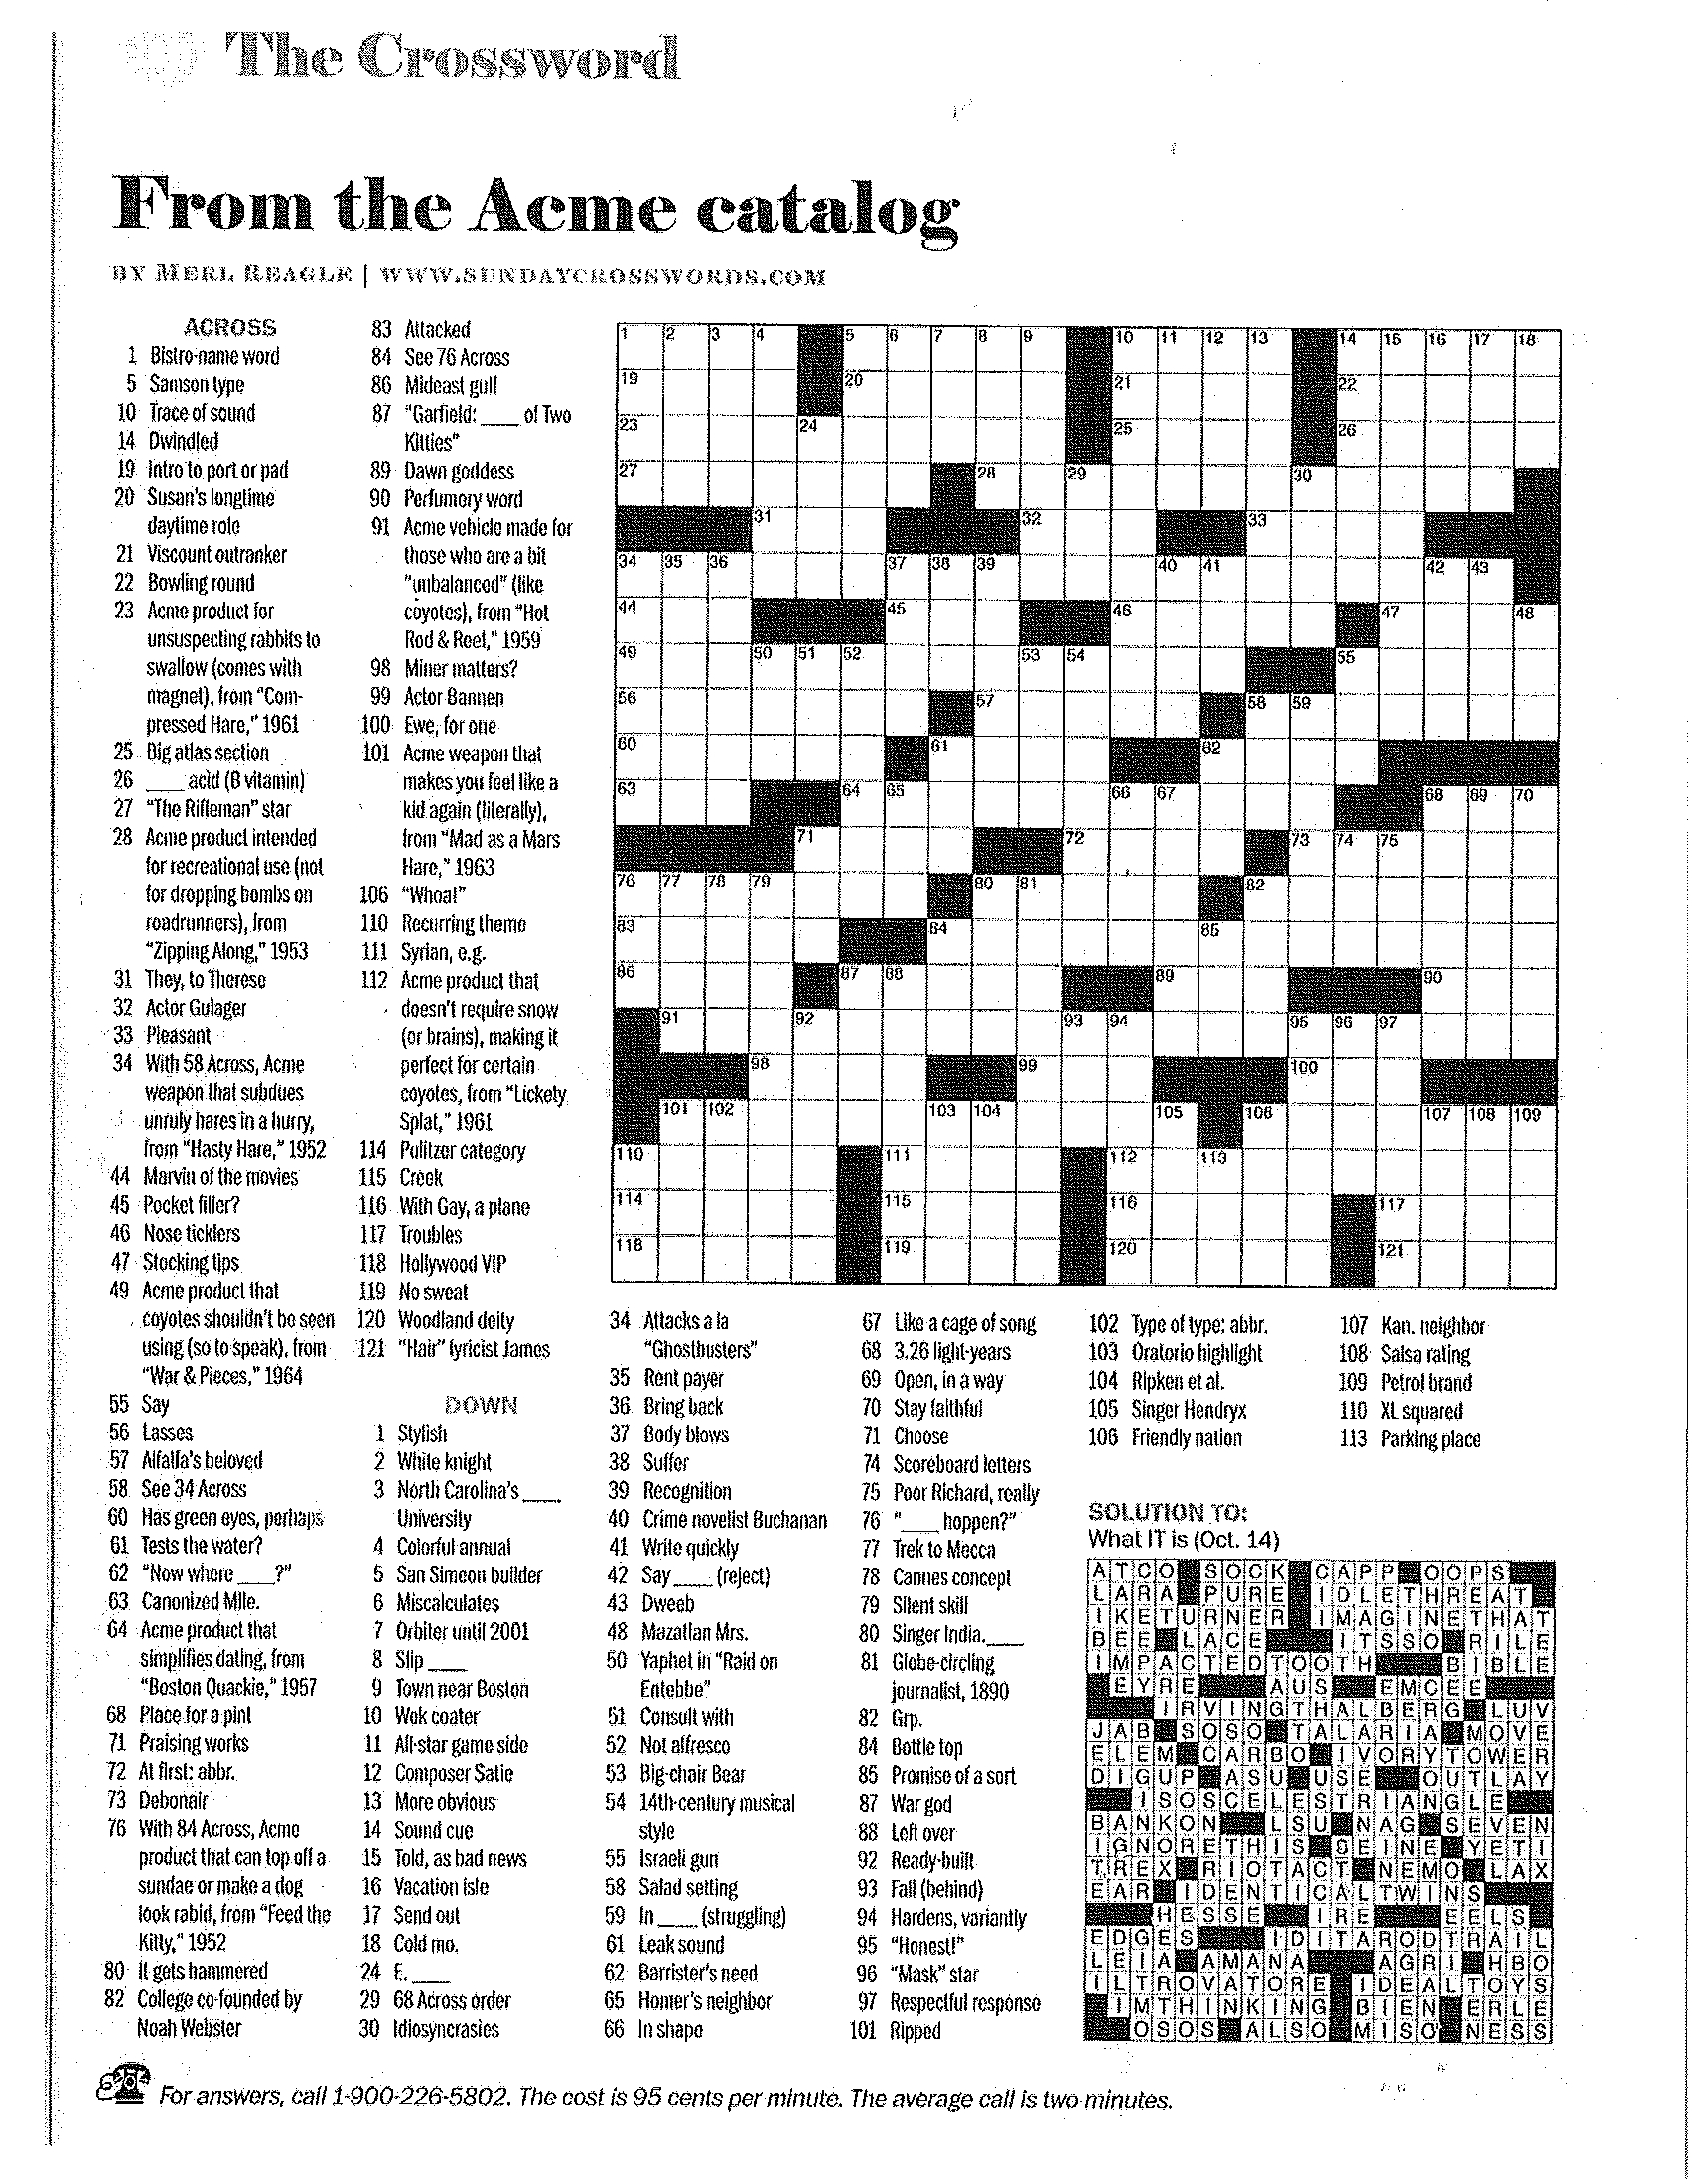 Printable Crossword Puzzles Merl Reagle   Download Them Or Print - Free Printable Merl Reagle Crossword Puzzles